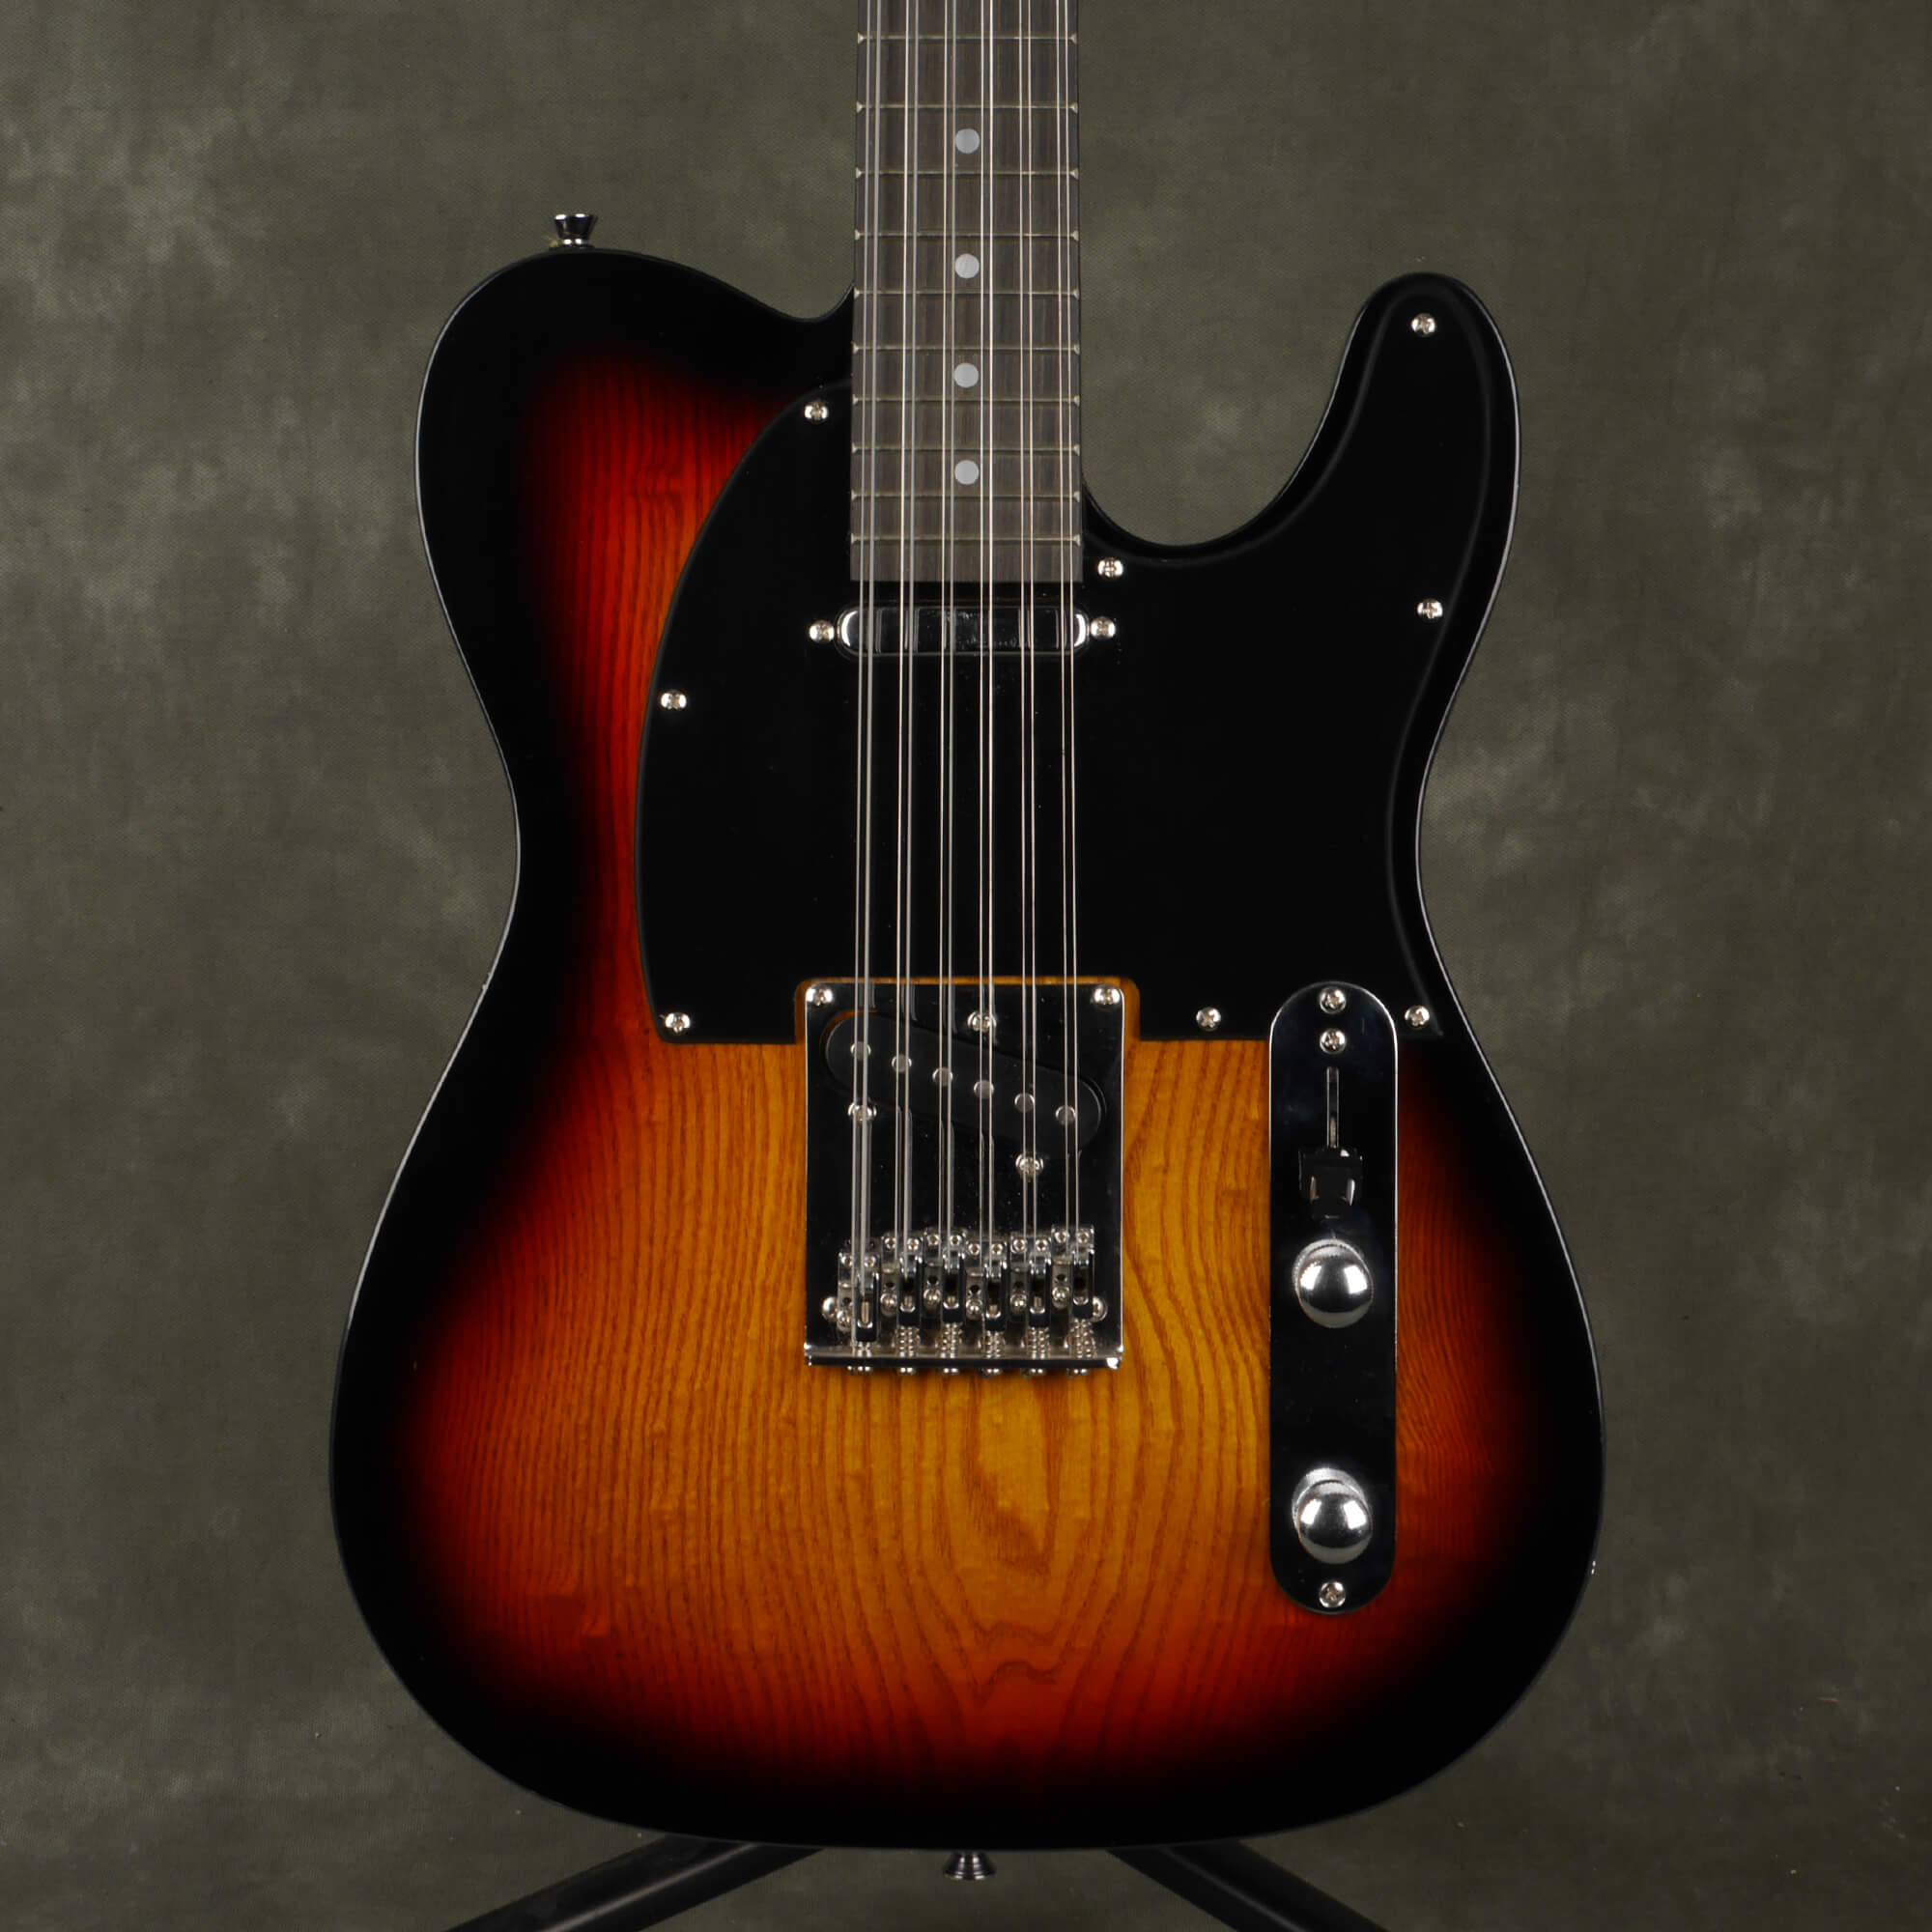 G4M Knoxville Deluxe 12-String Electric Guitar - Sunburst - 2nd Hand